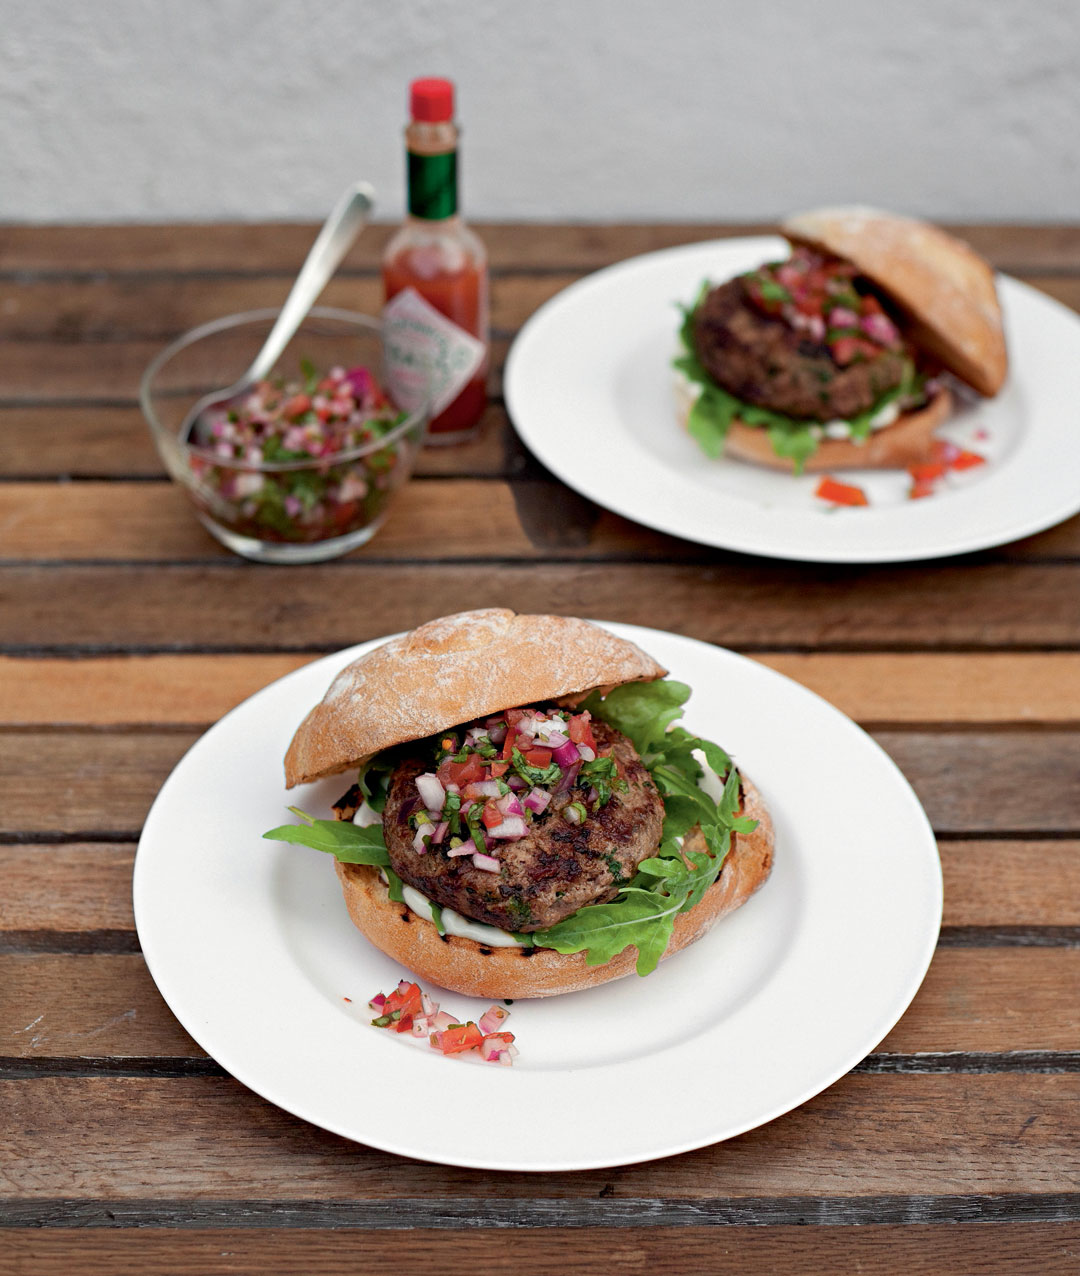 Chimichurri-style burgers by Jane Hornby from Simple & Classic. Photography by Liz and Max Haarala Hamilton